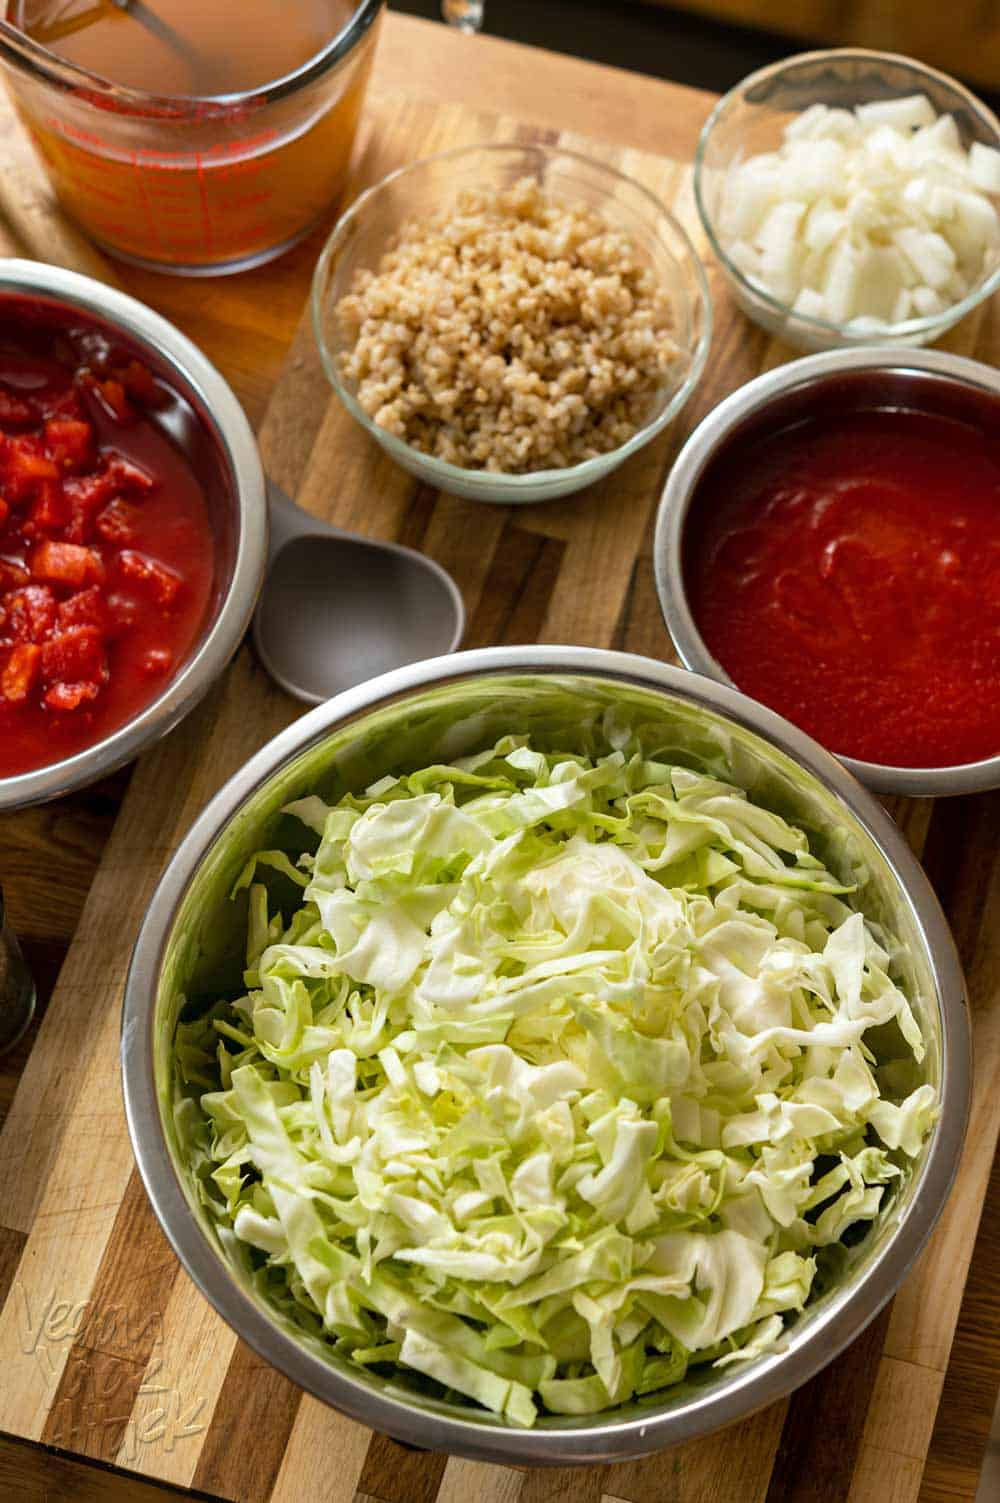 Ingredients in bowls on a cutting board, including cabbage, tomatoes, and rice